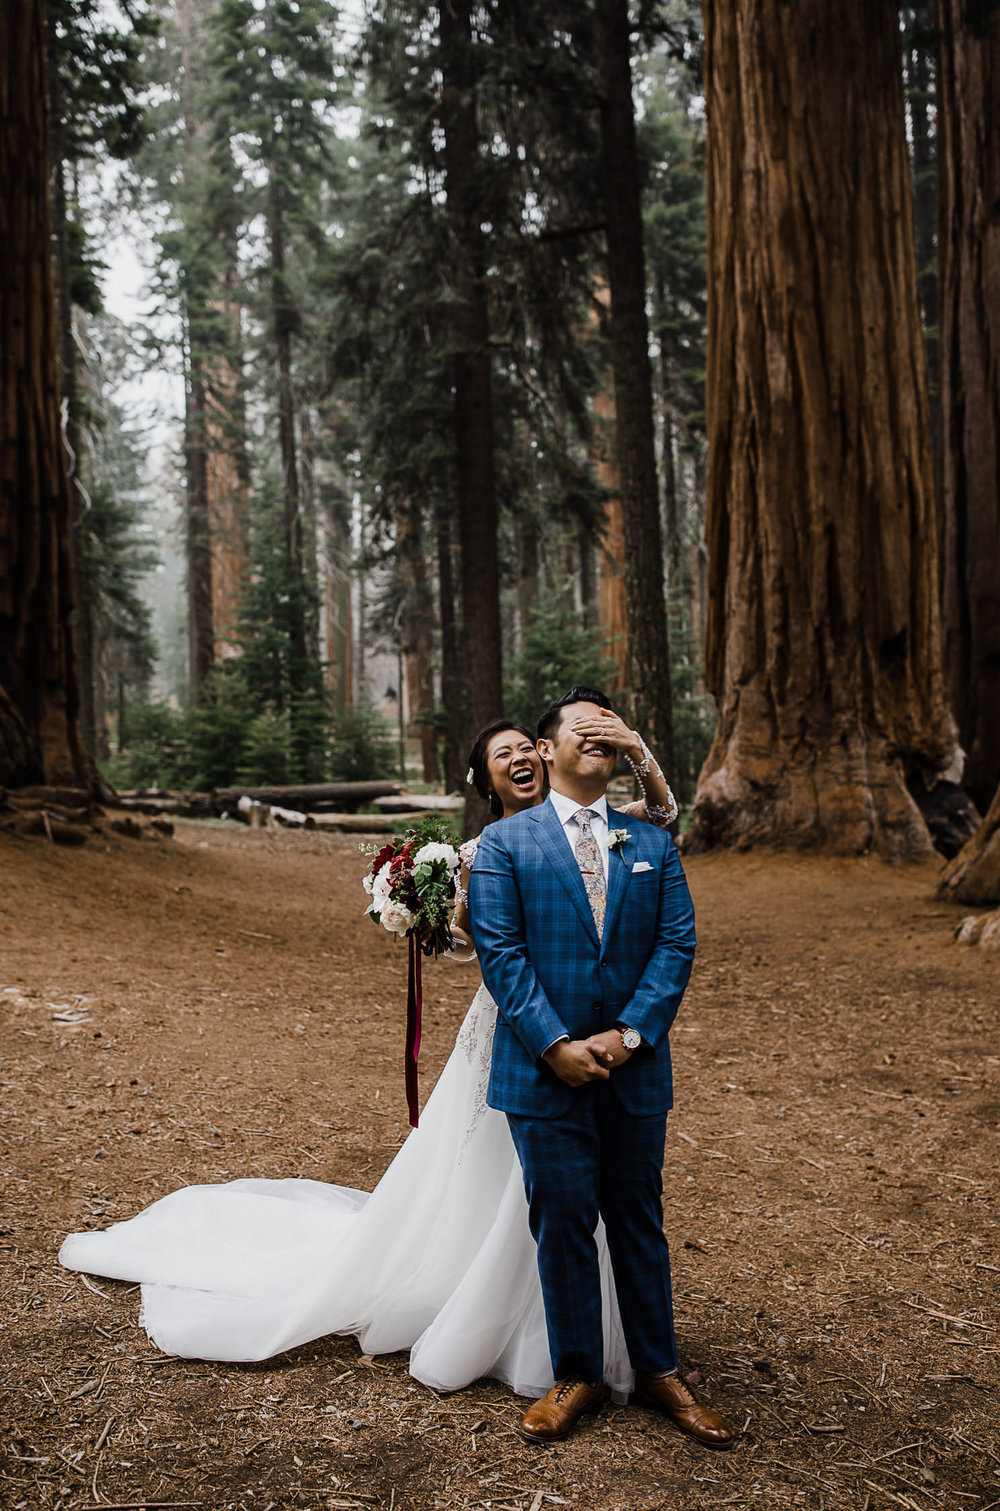 sequoia-national-park-foggy-forest-wedding-elopement-photographer-7 copy.jpg